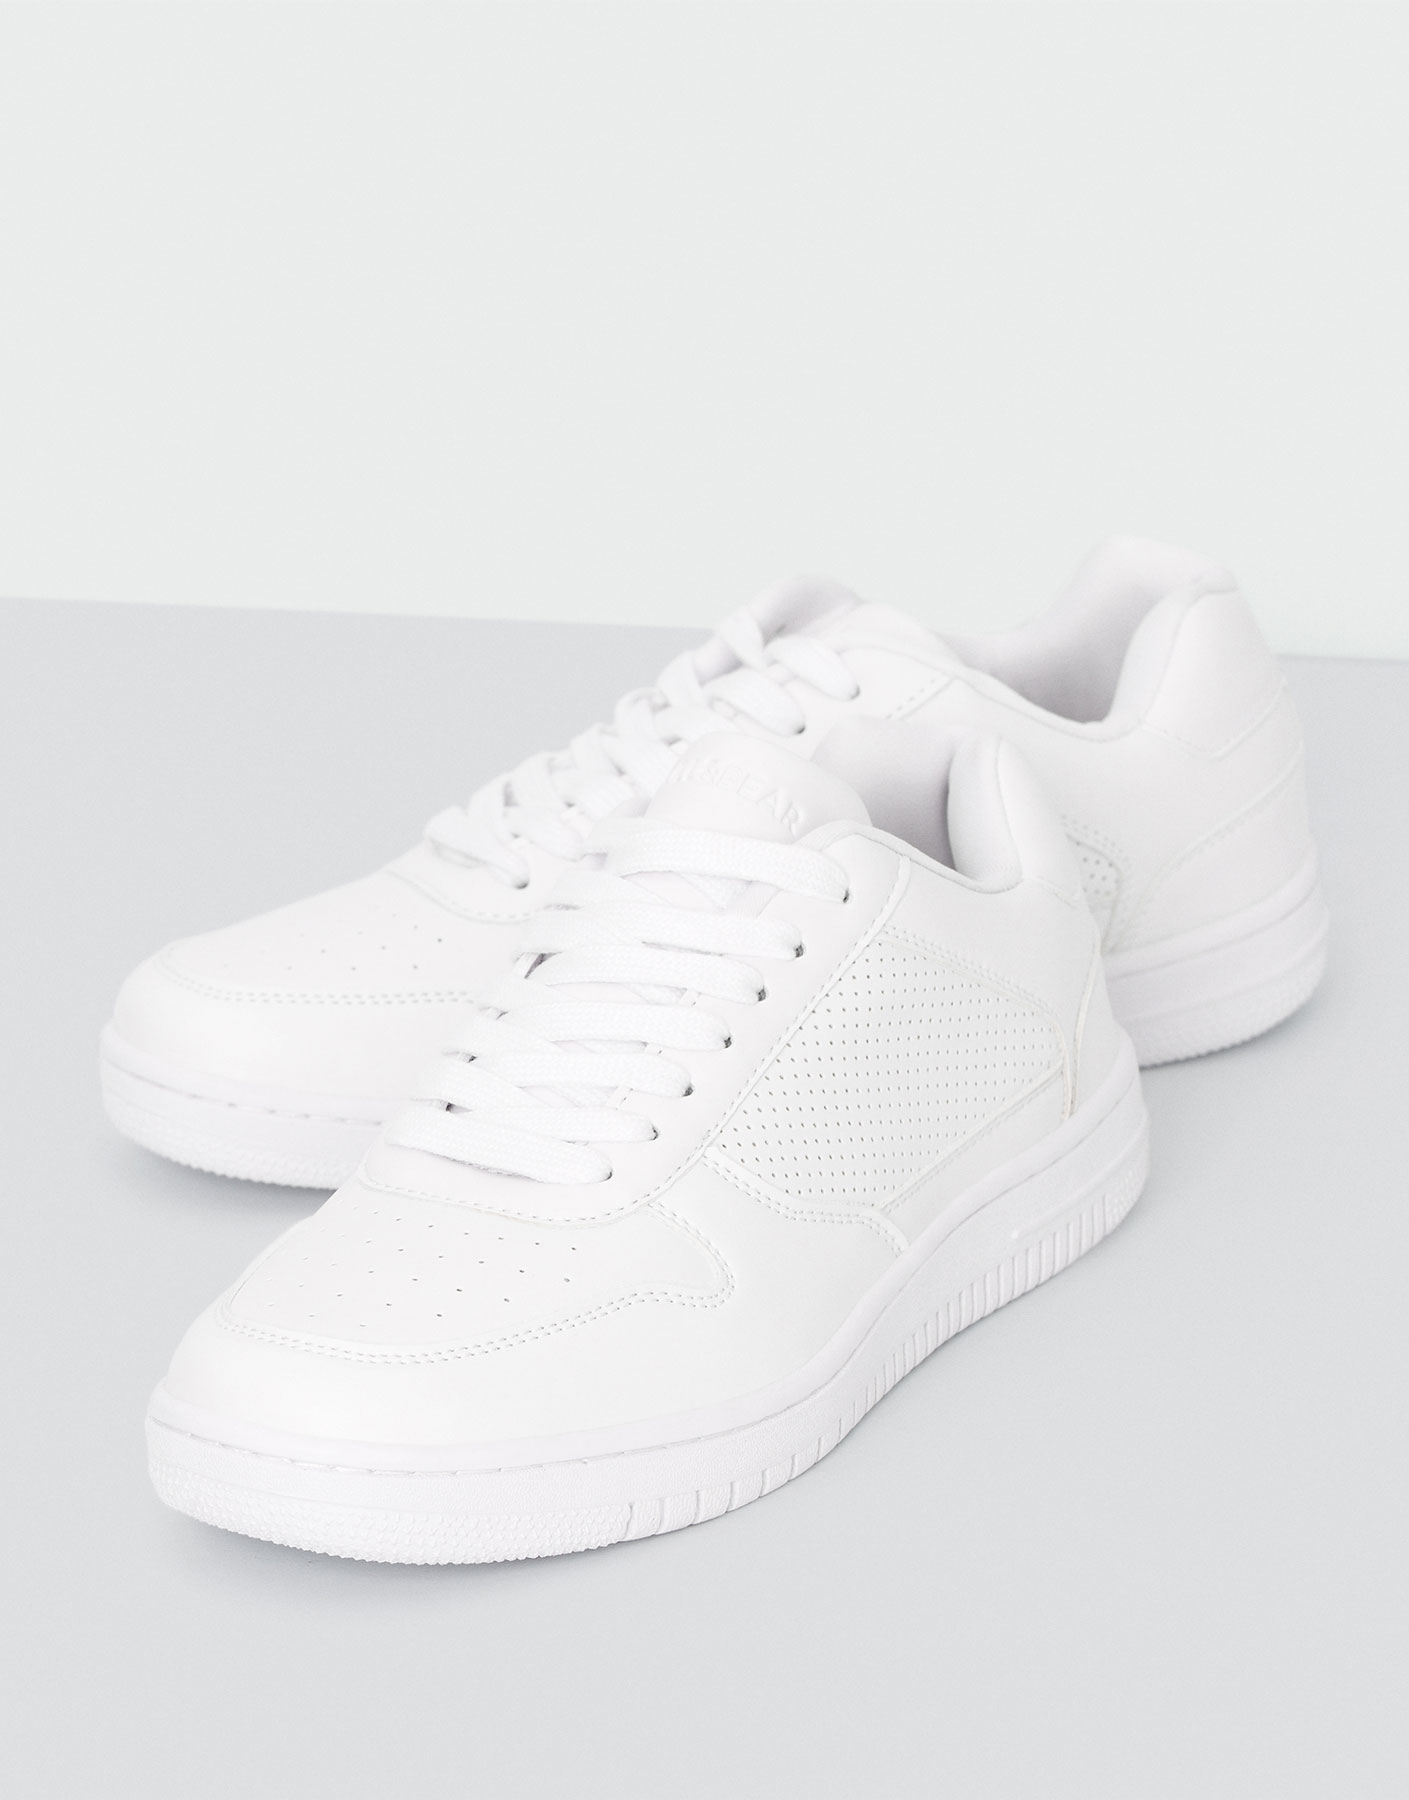 Basketball plimsolls